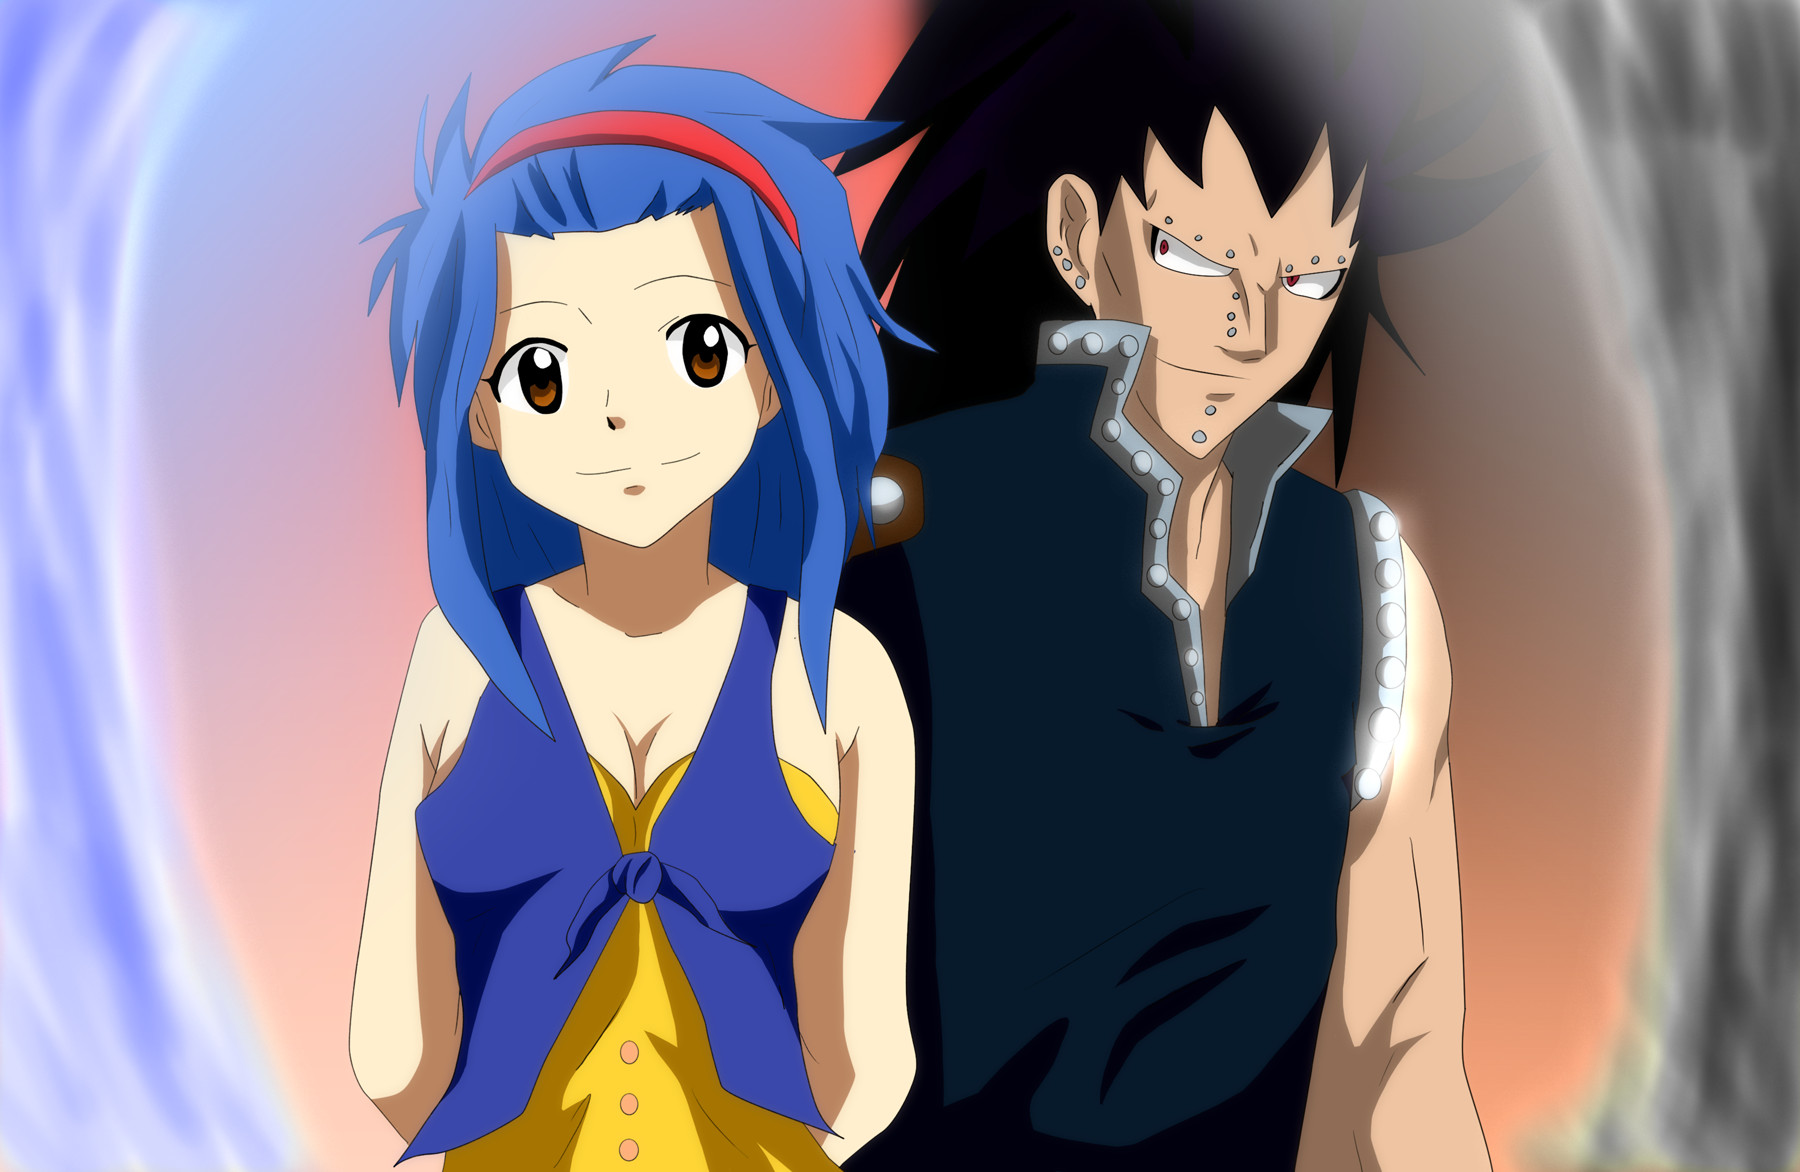 Fairy Tail Gajeel And Levy by Mr123GOKU123 on DeviantArt